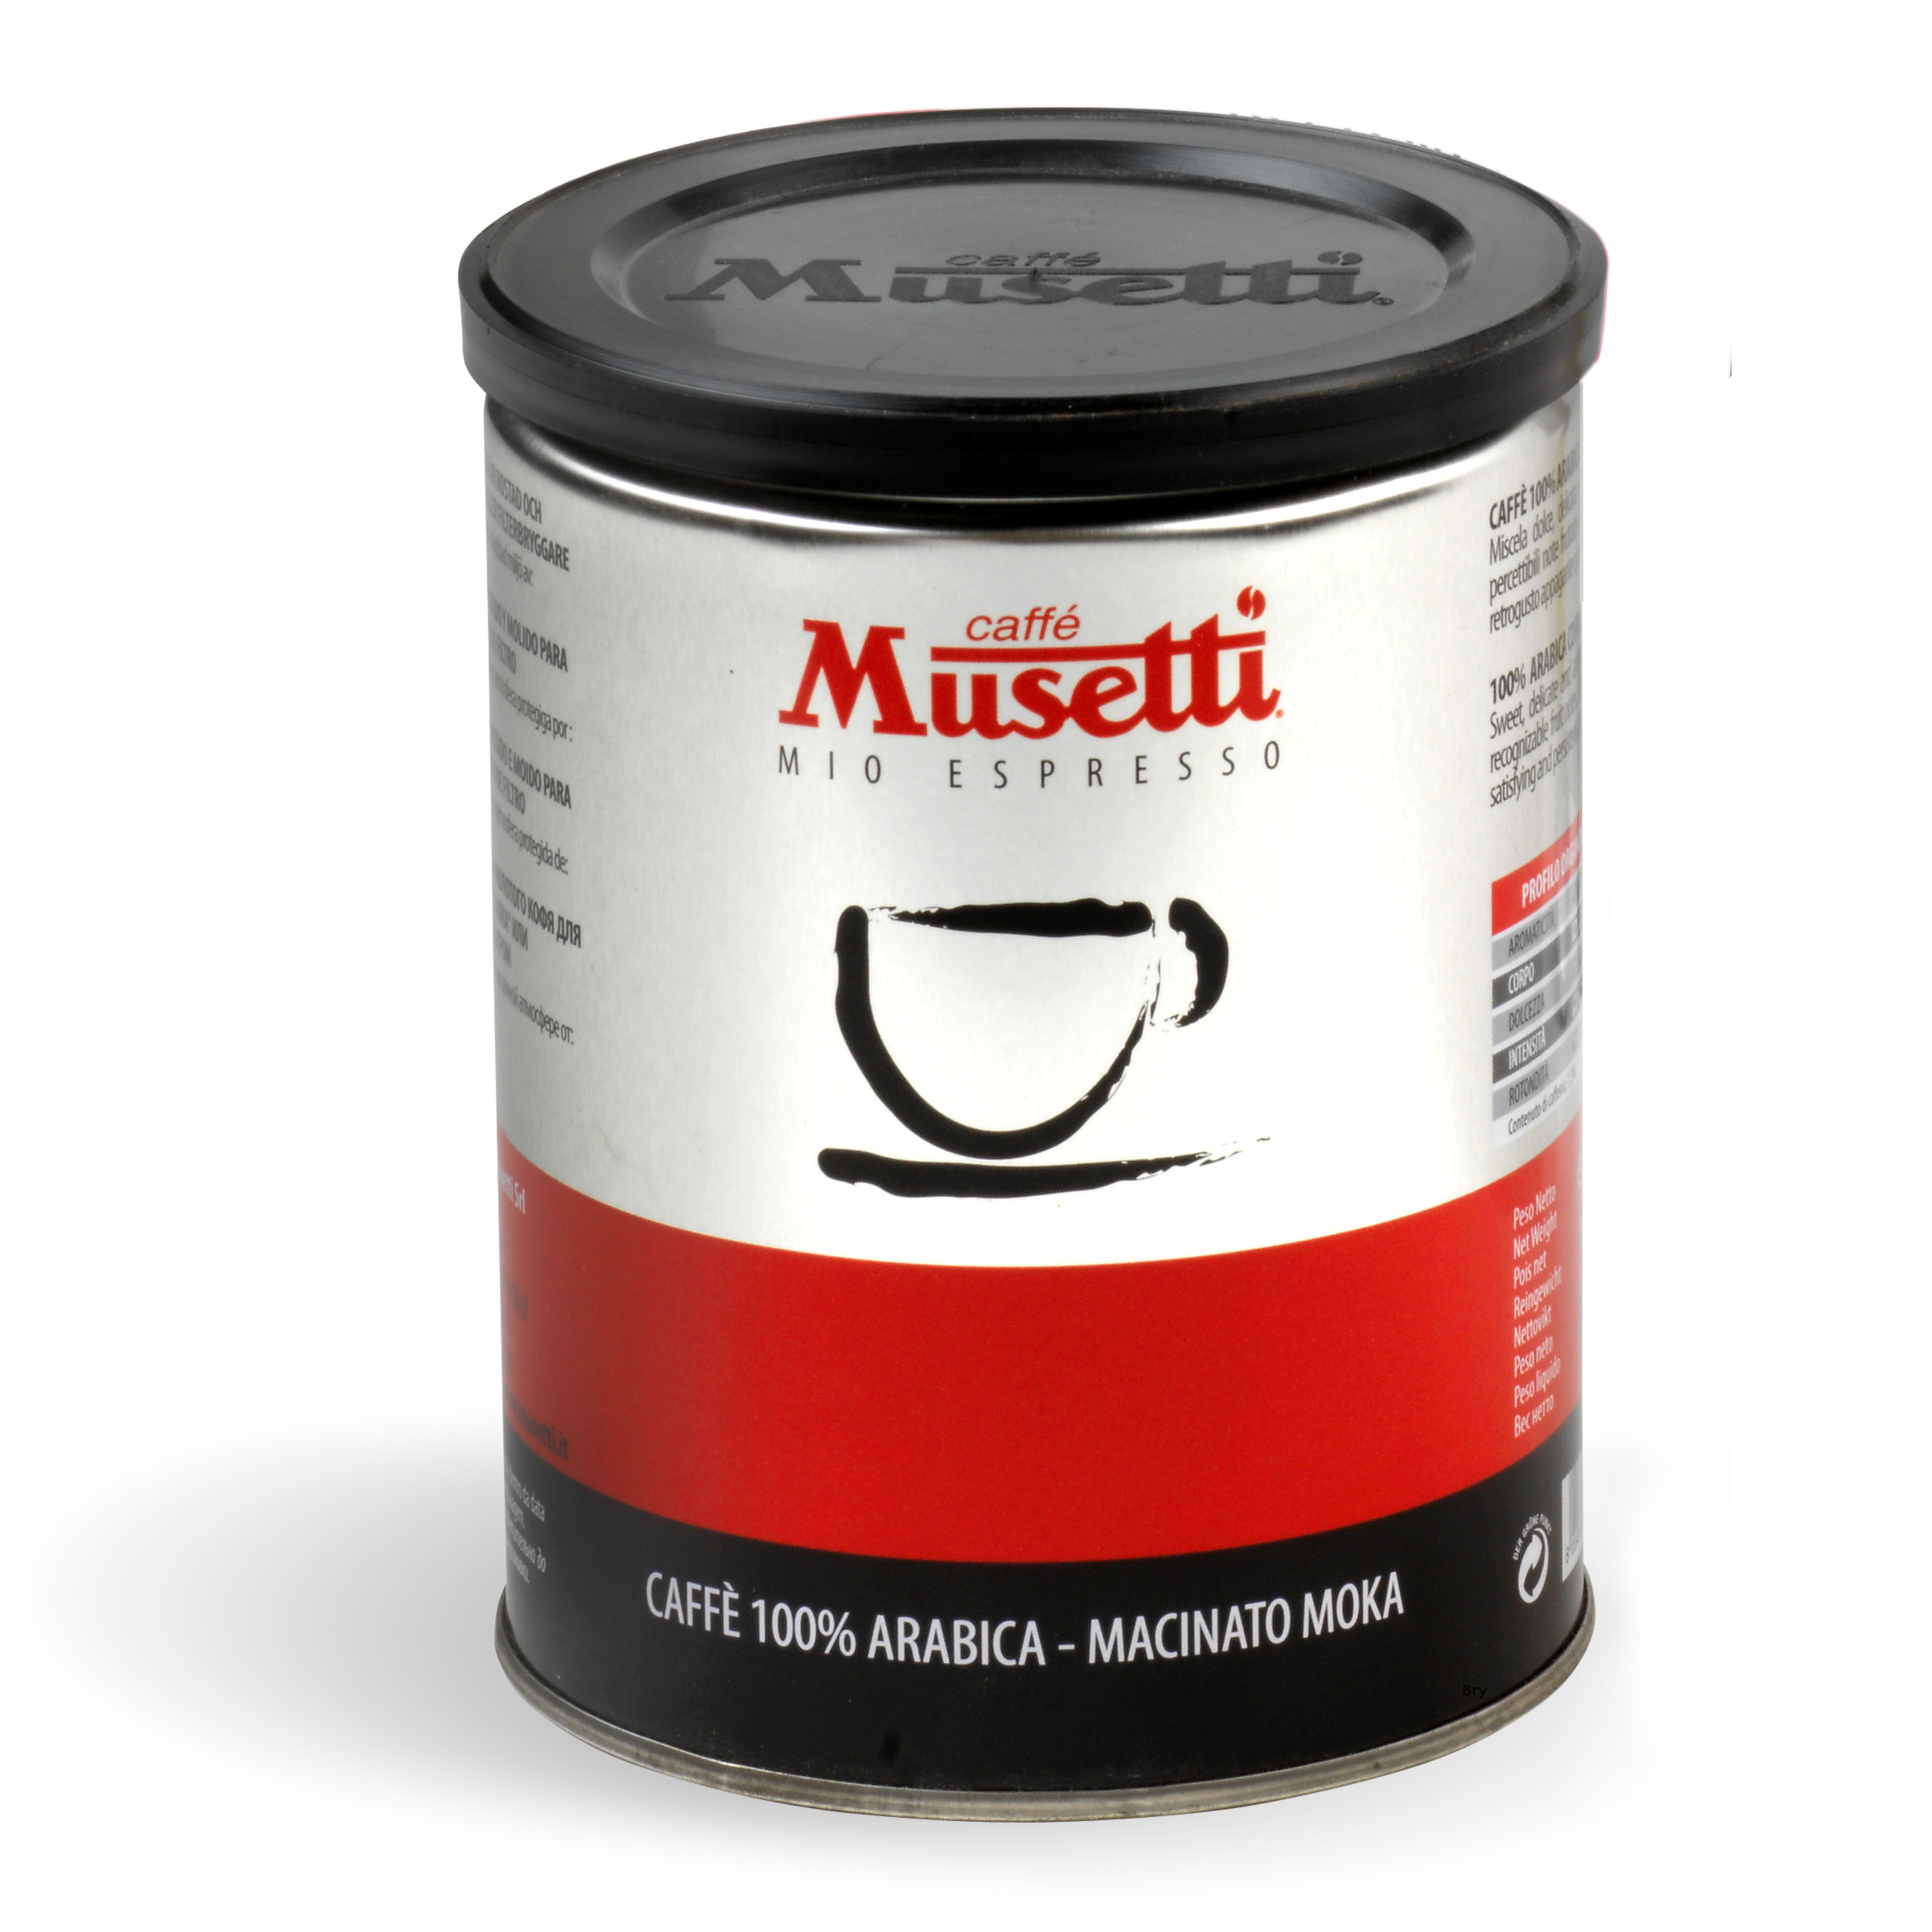 Musetti black coffee nera 100 arabica ground tin for Musetti coffee